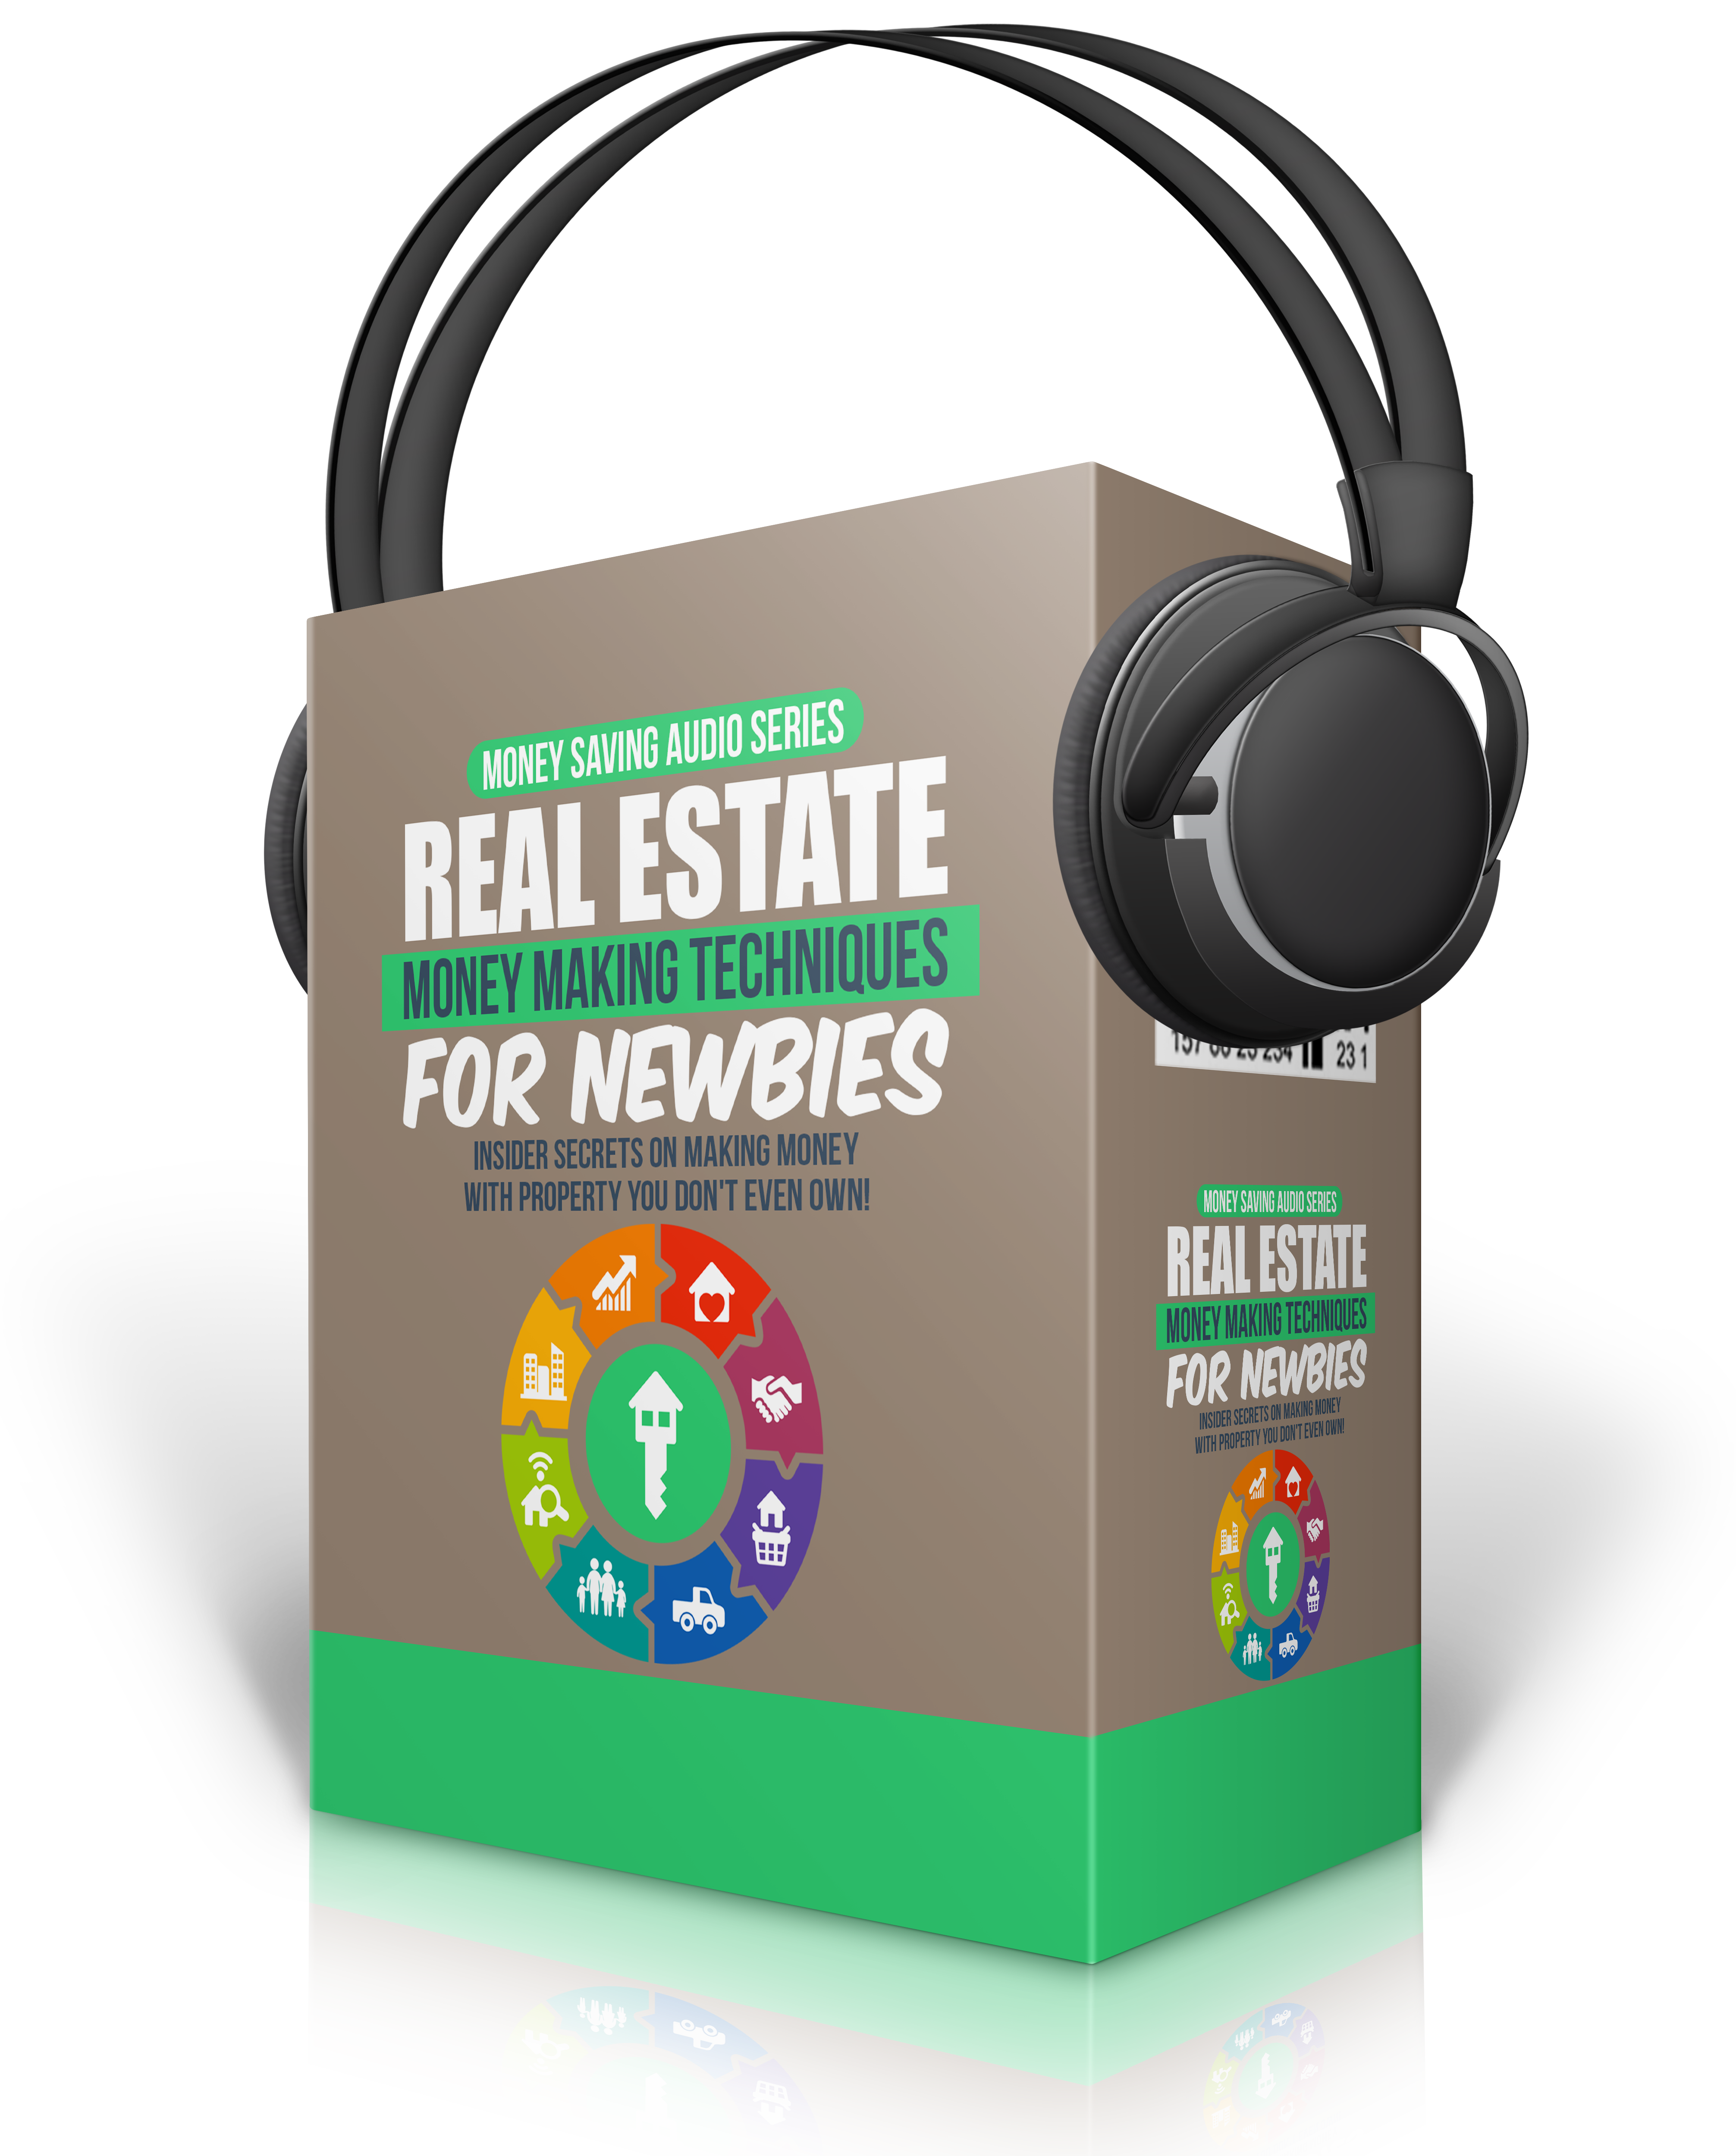 Real_Estate_Money_Making_Techniques_For_Newbies_Audiobook